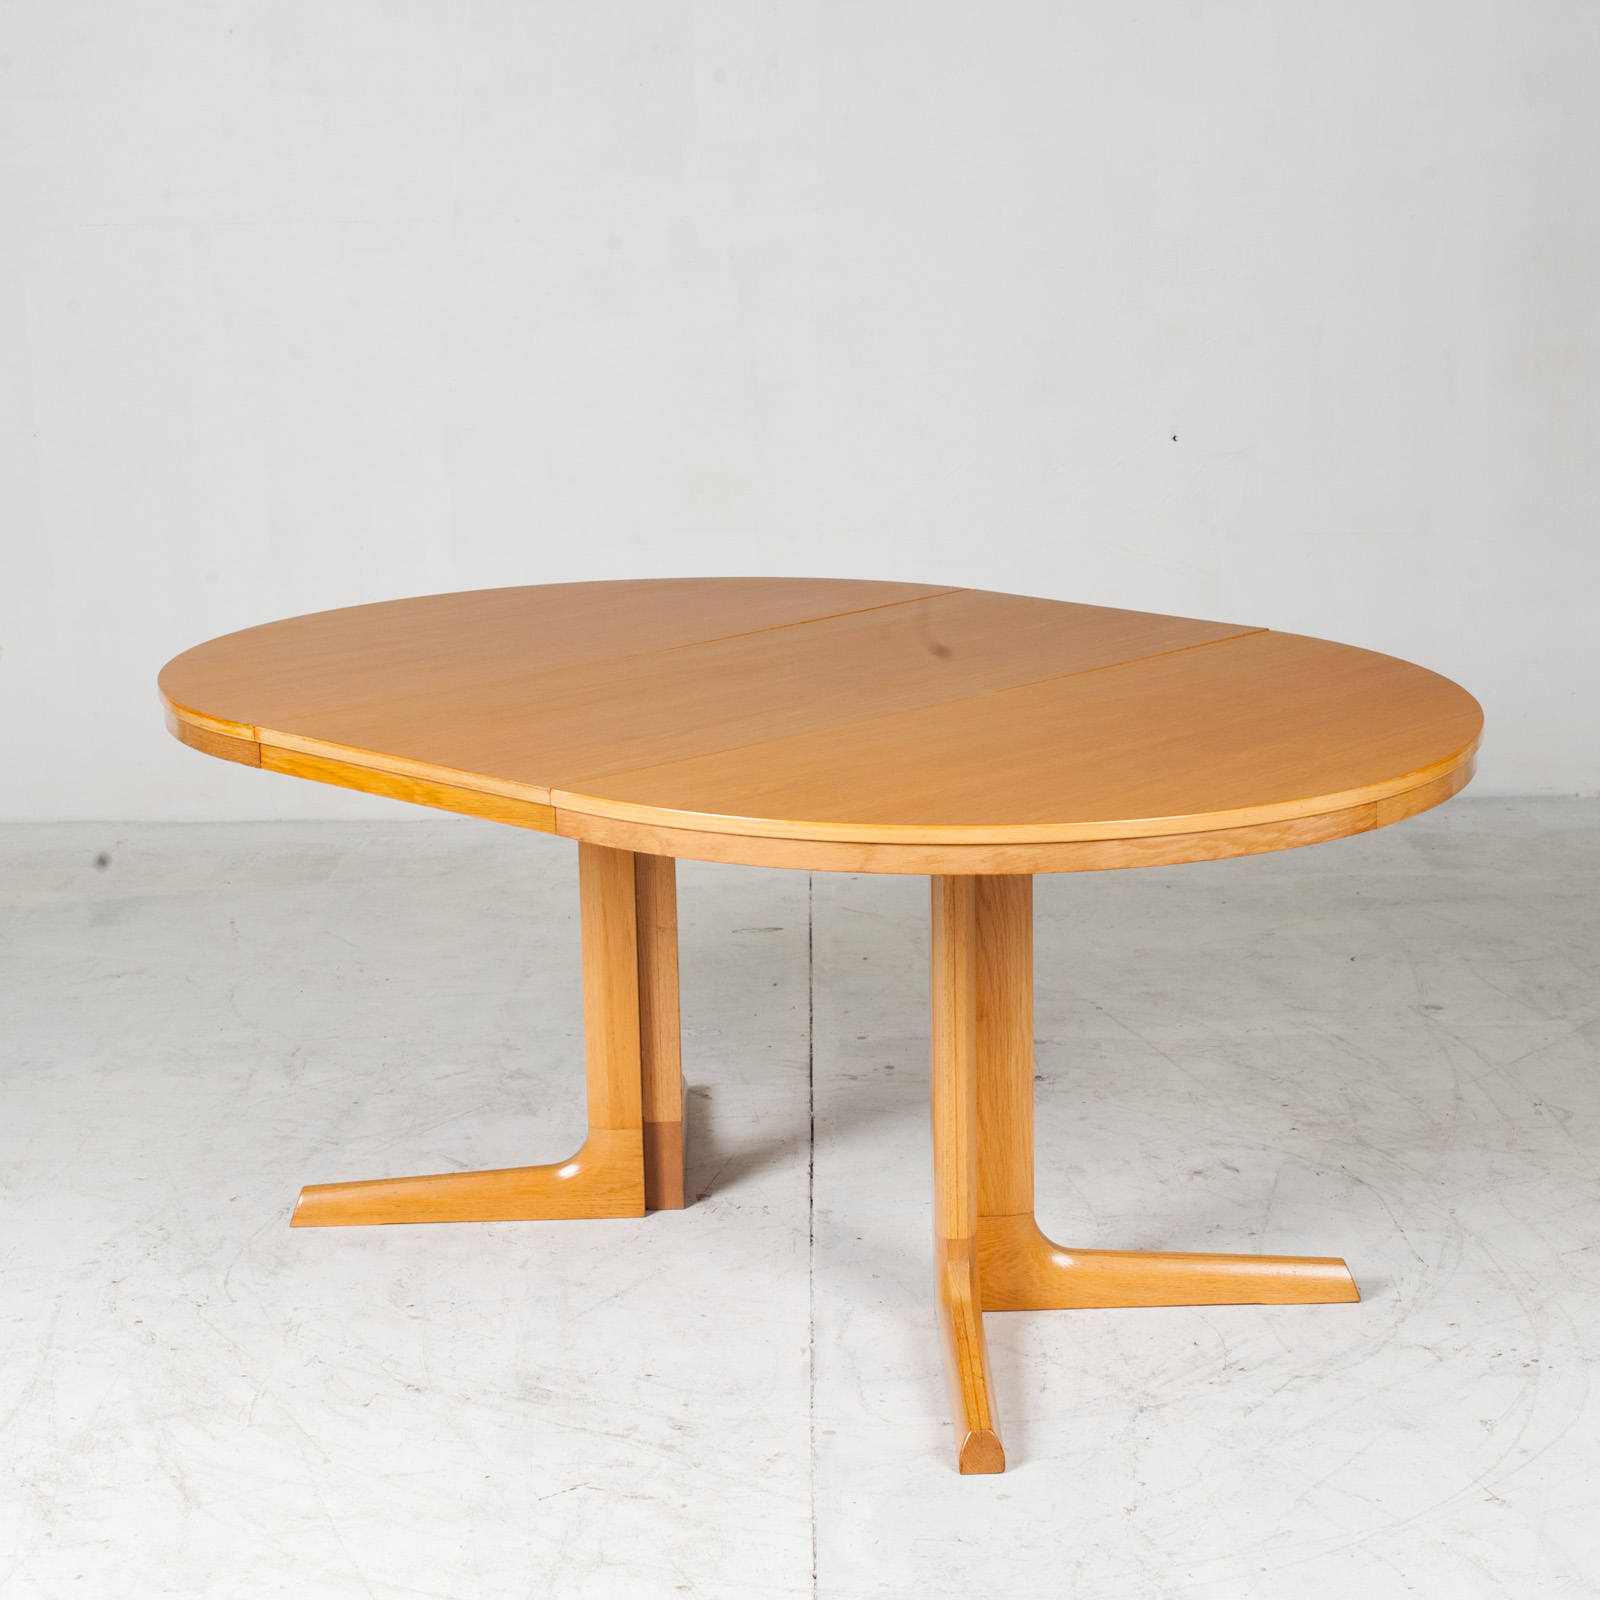 Round Dining Table In Oak With Pedestal Base And 2 Extentions 1960s Denmark 09